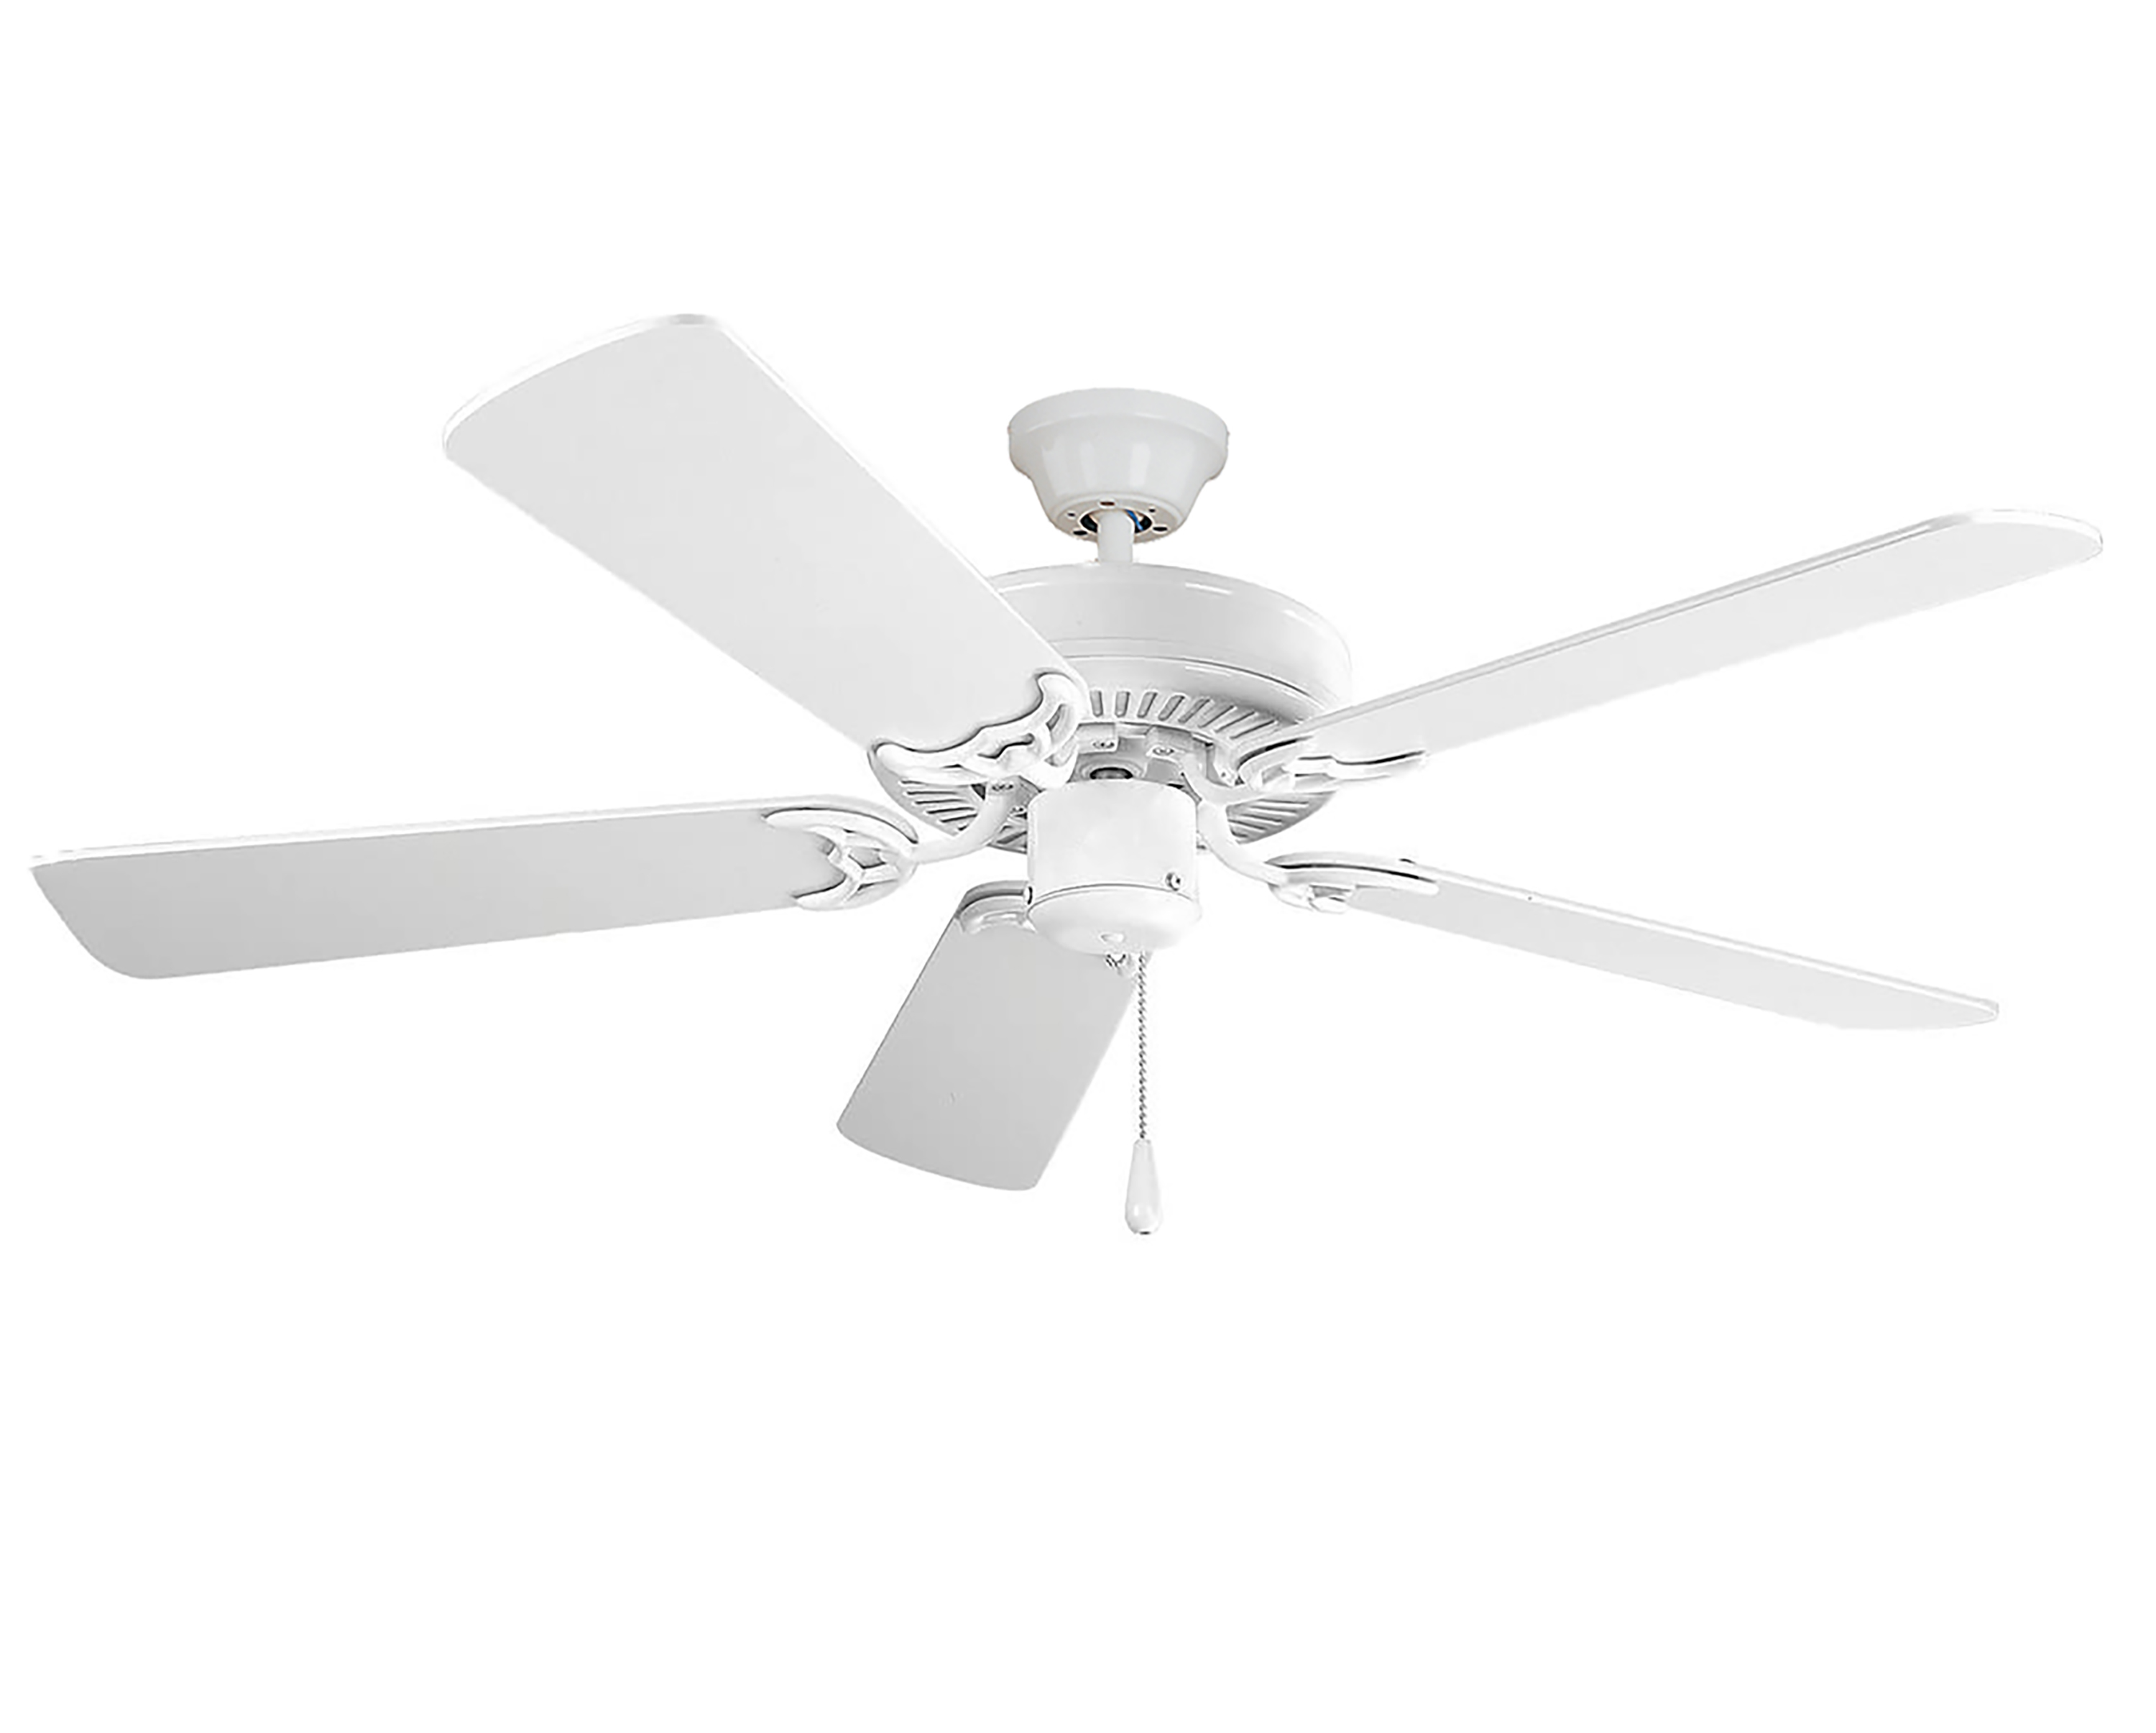 Oak Ceiling Fans With Lights : Basic max quot ceiling fan white light oak blades indoor